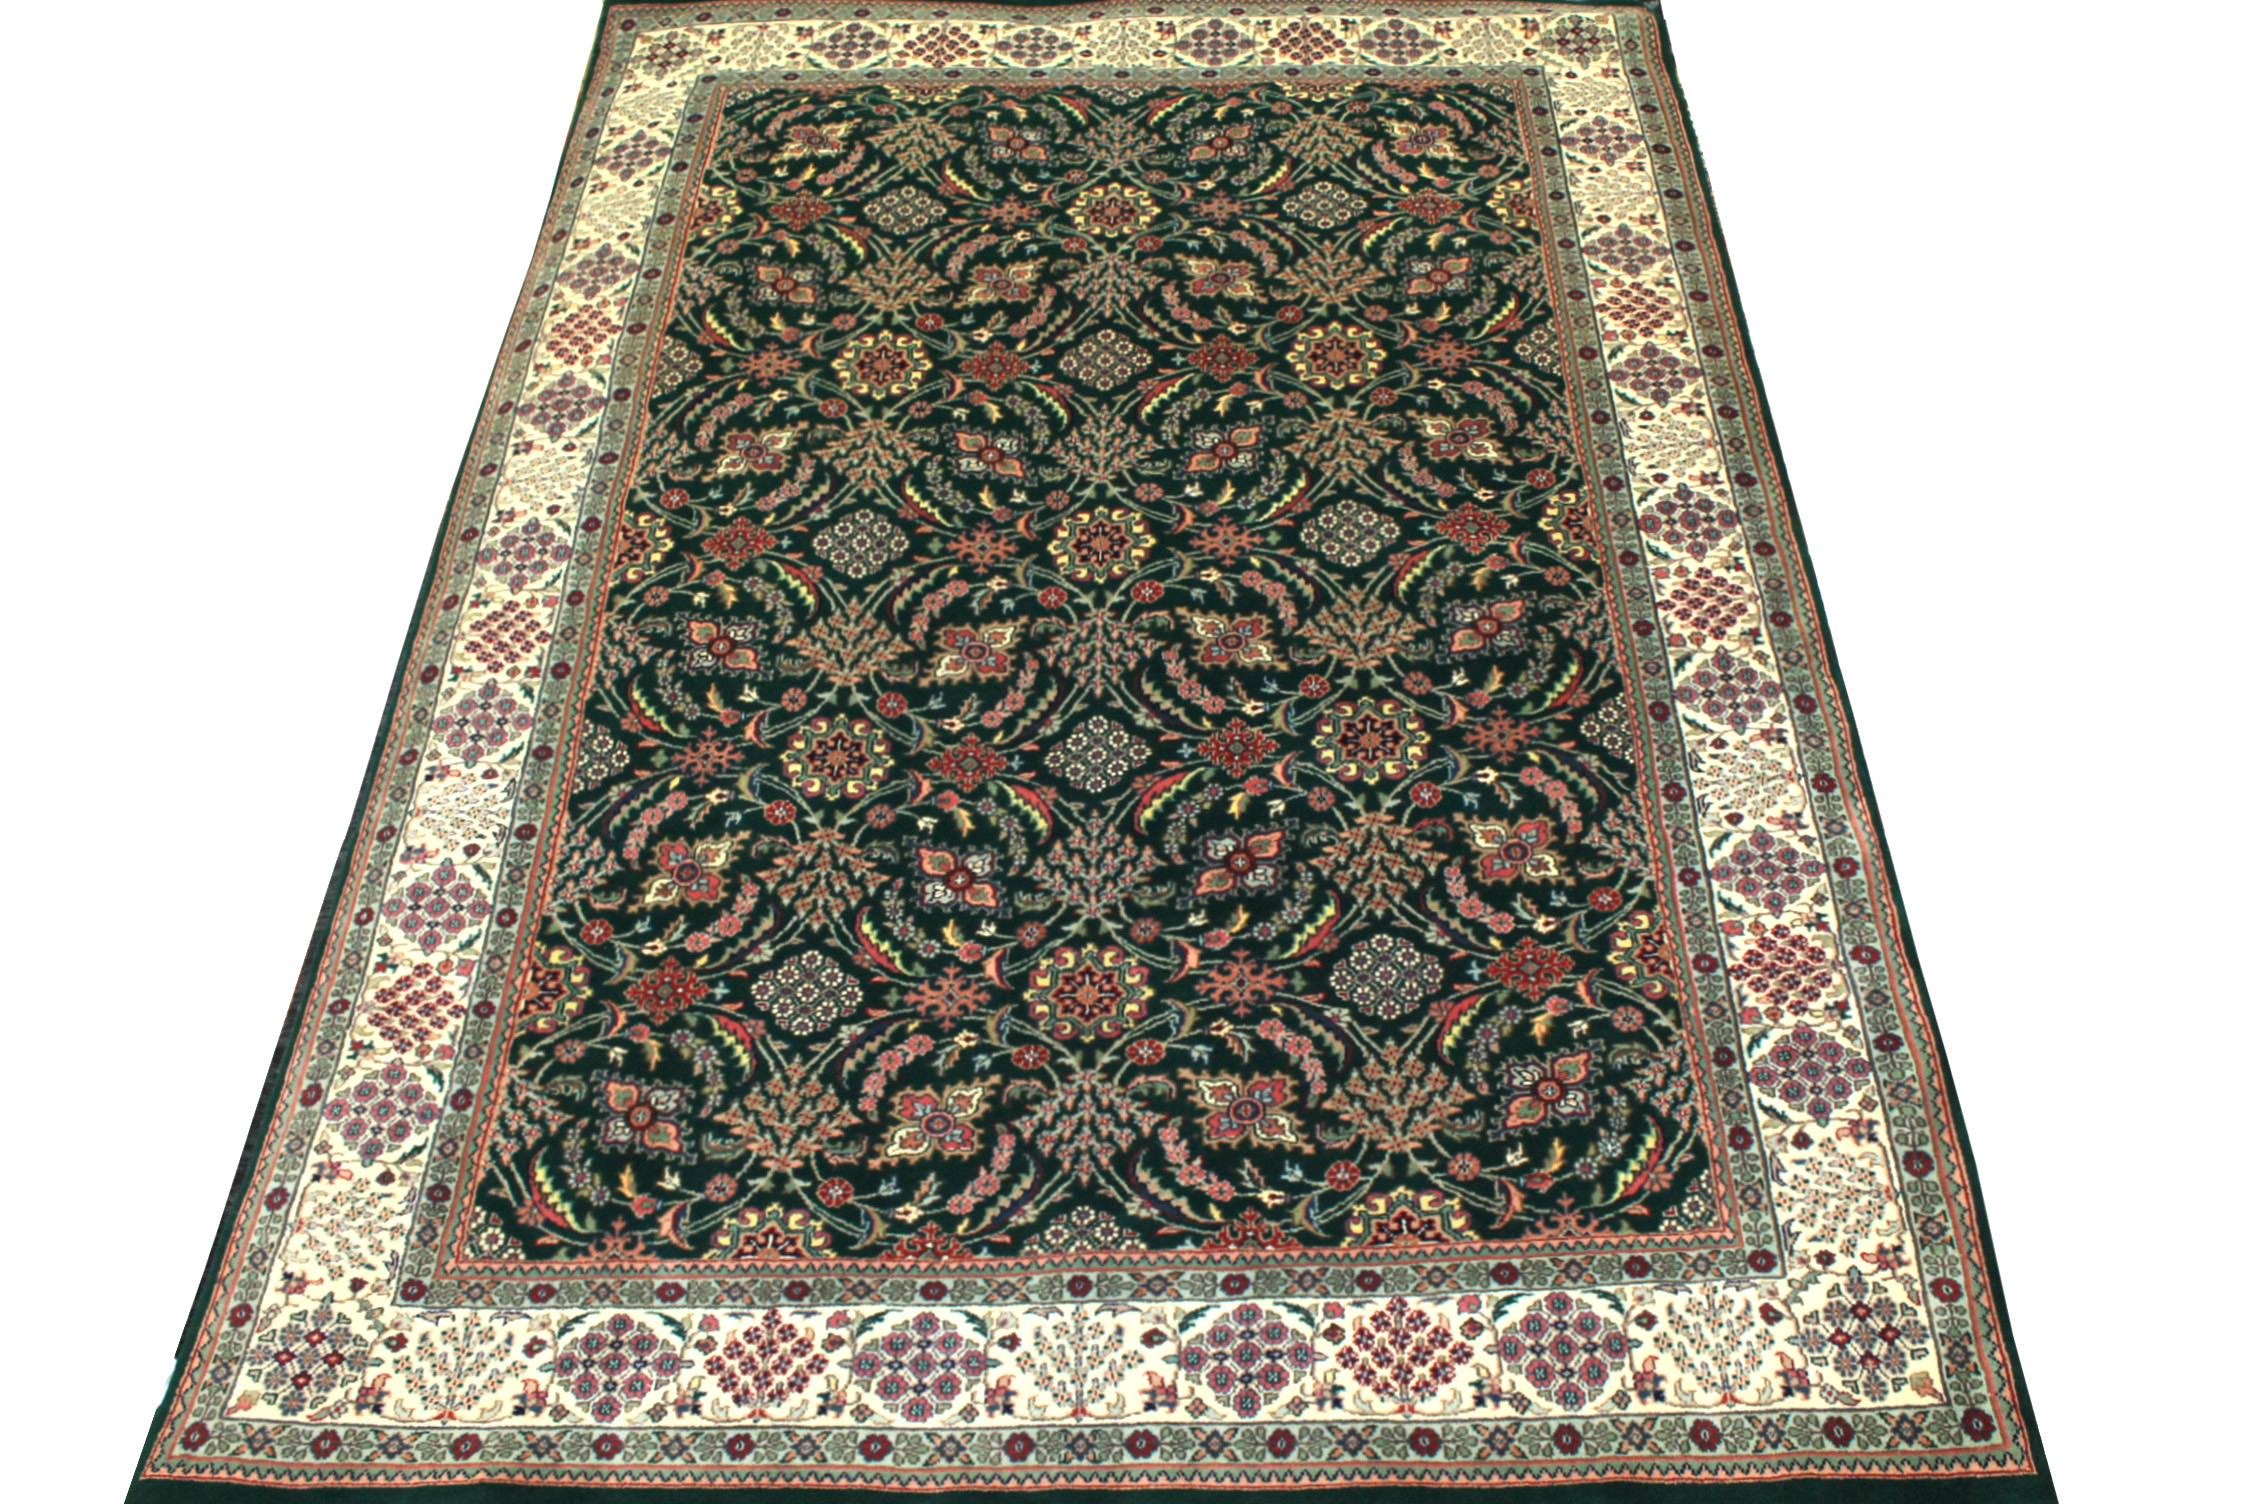 6x9 Traditional Hand Knotted Wool Area Rug - MR0722